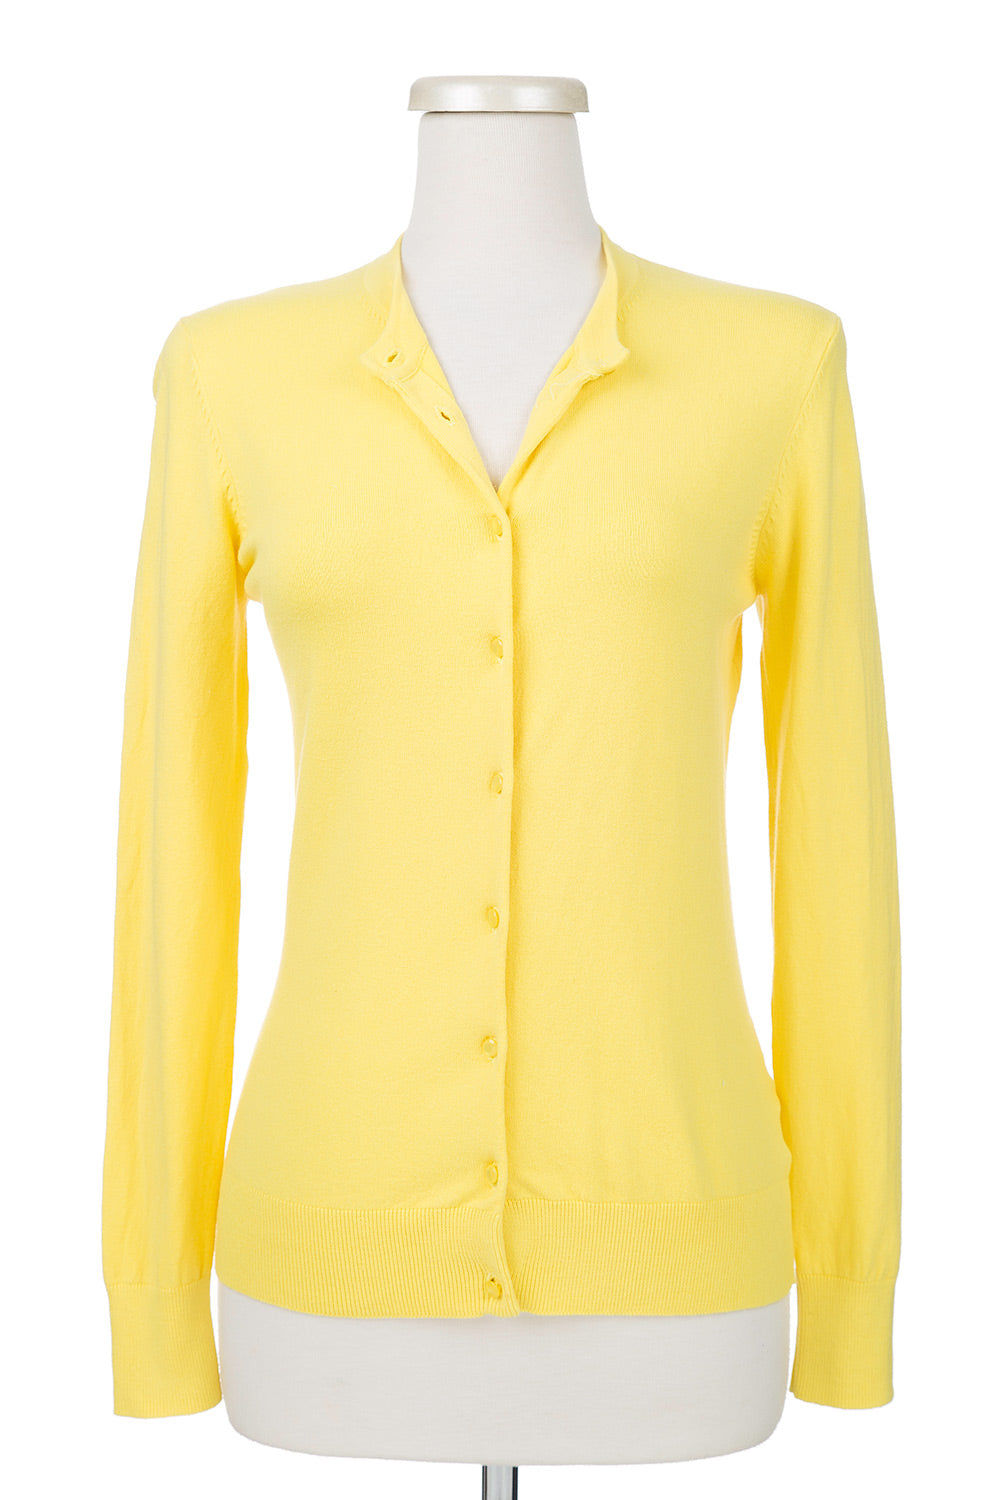 Type 1 Lemon Drop Cardigan